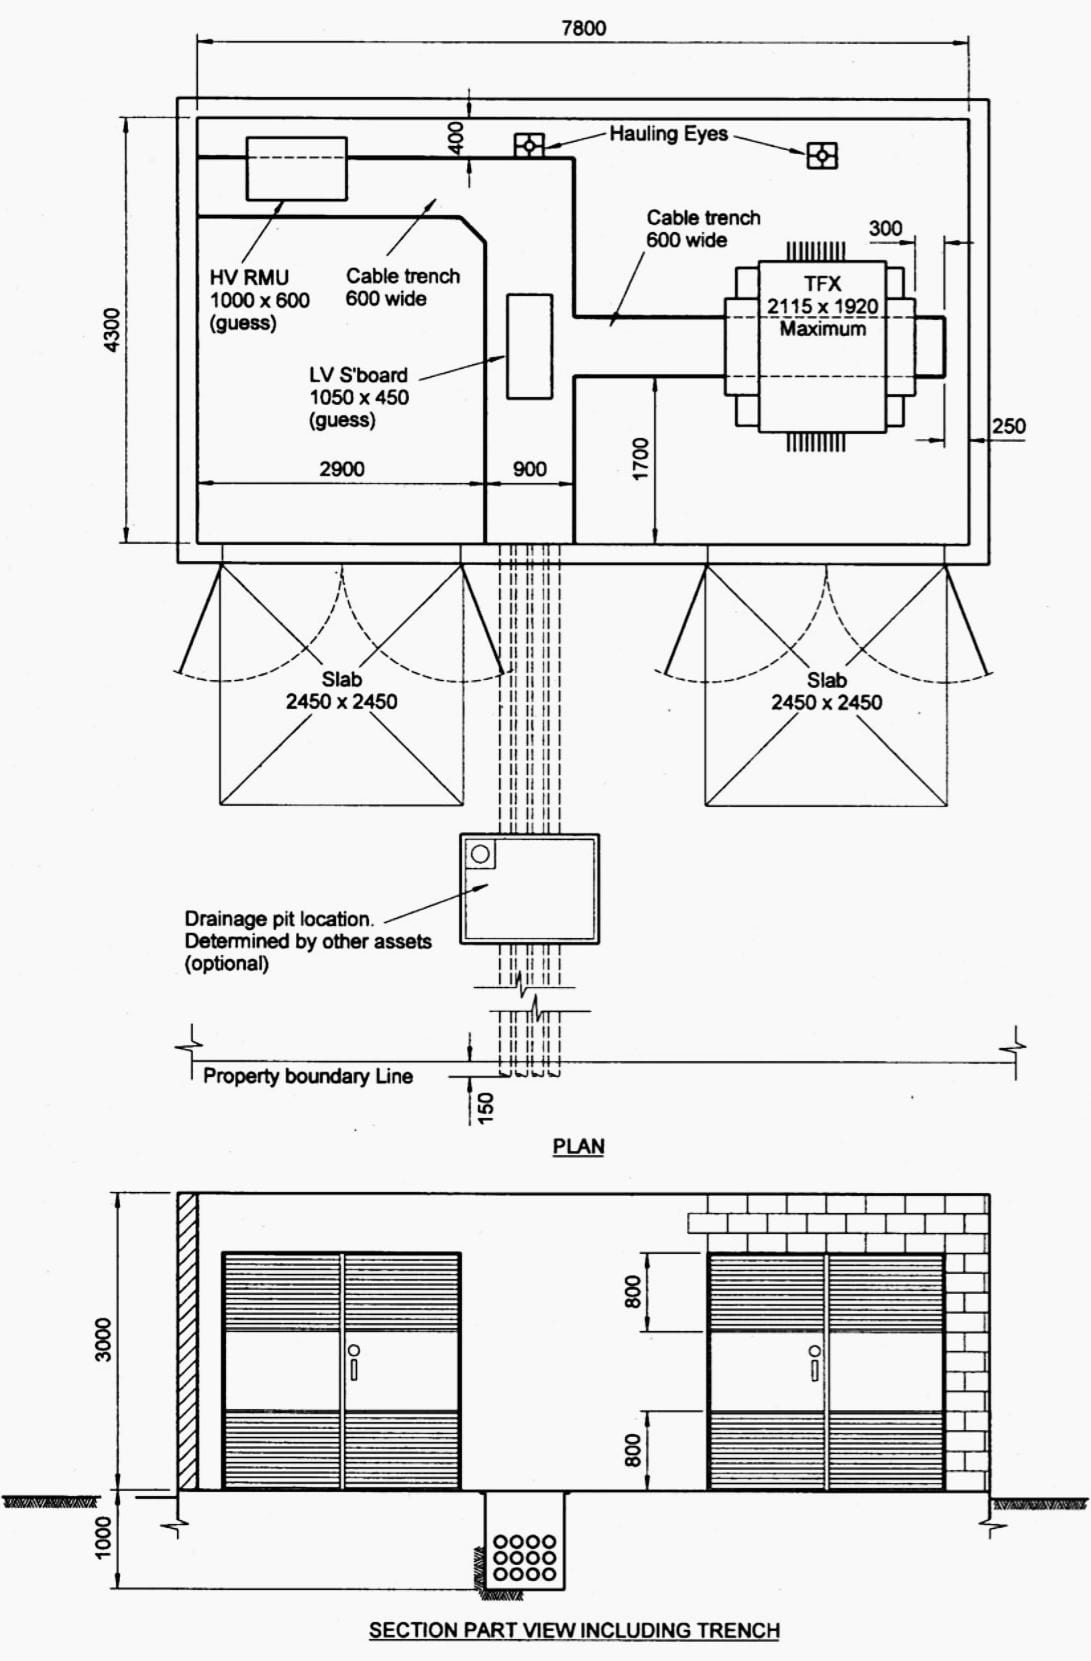 Indoor distribution substation layout with 1 transformer and EMF containment